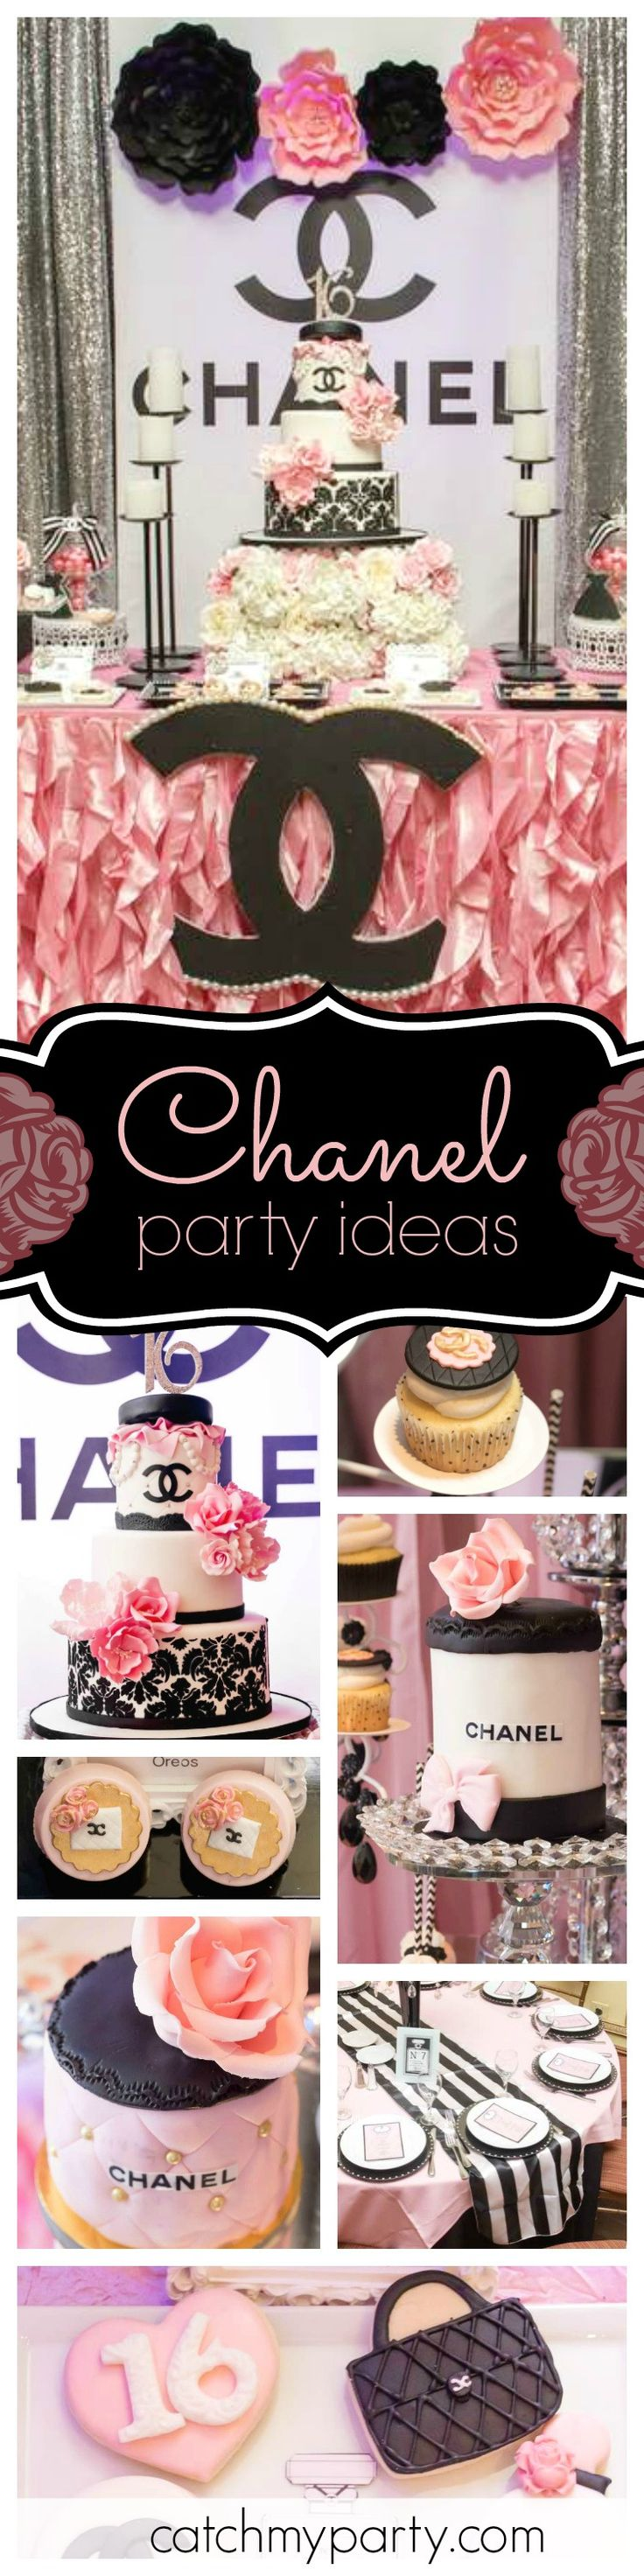 You don't want to miss this glamorous Chanel inspired Sweet 16 birthday party. It's fabulous!! Just look at that cake! See more party ideas and share yours at CatchMyParty.com